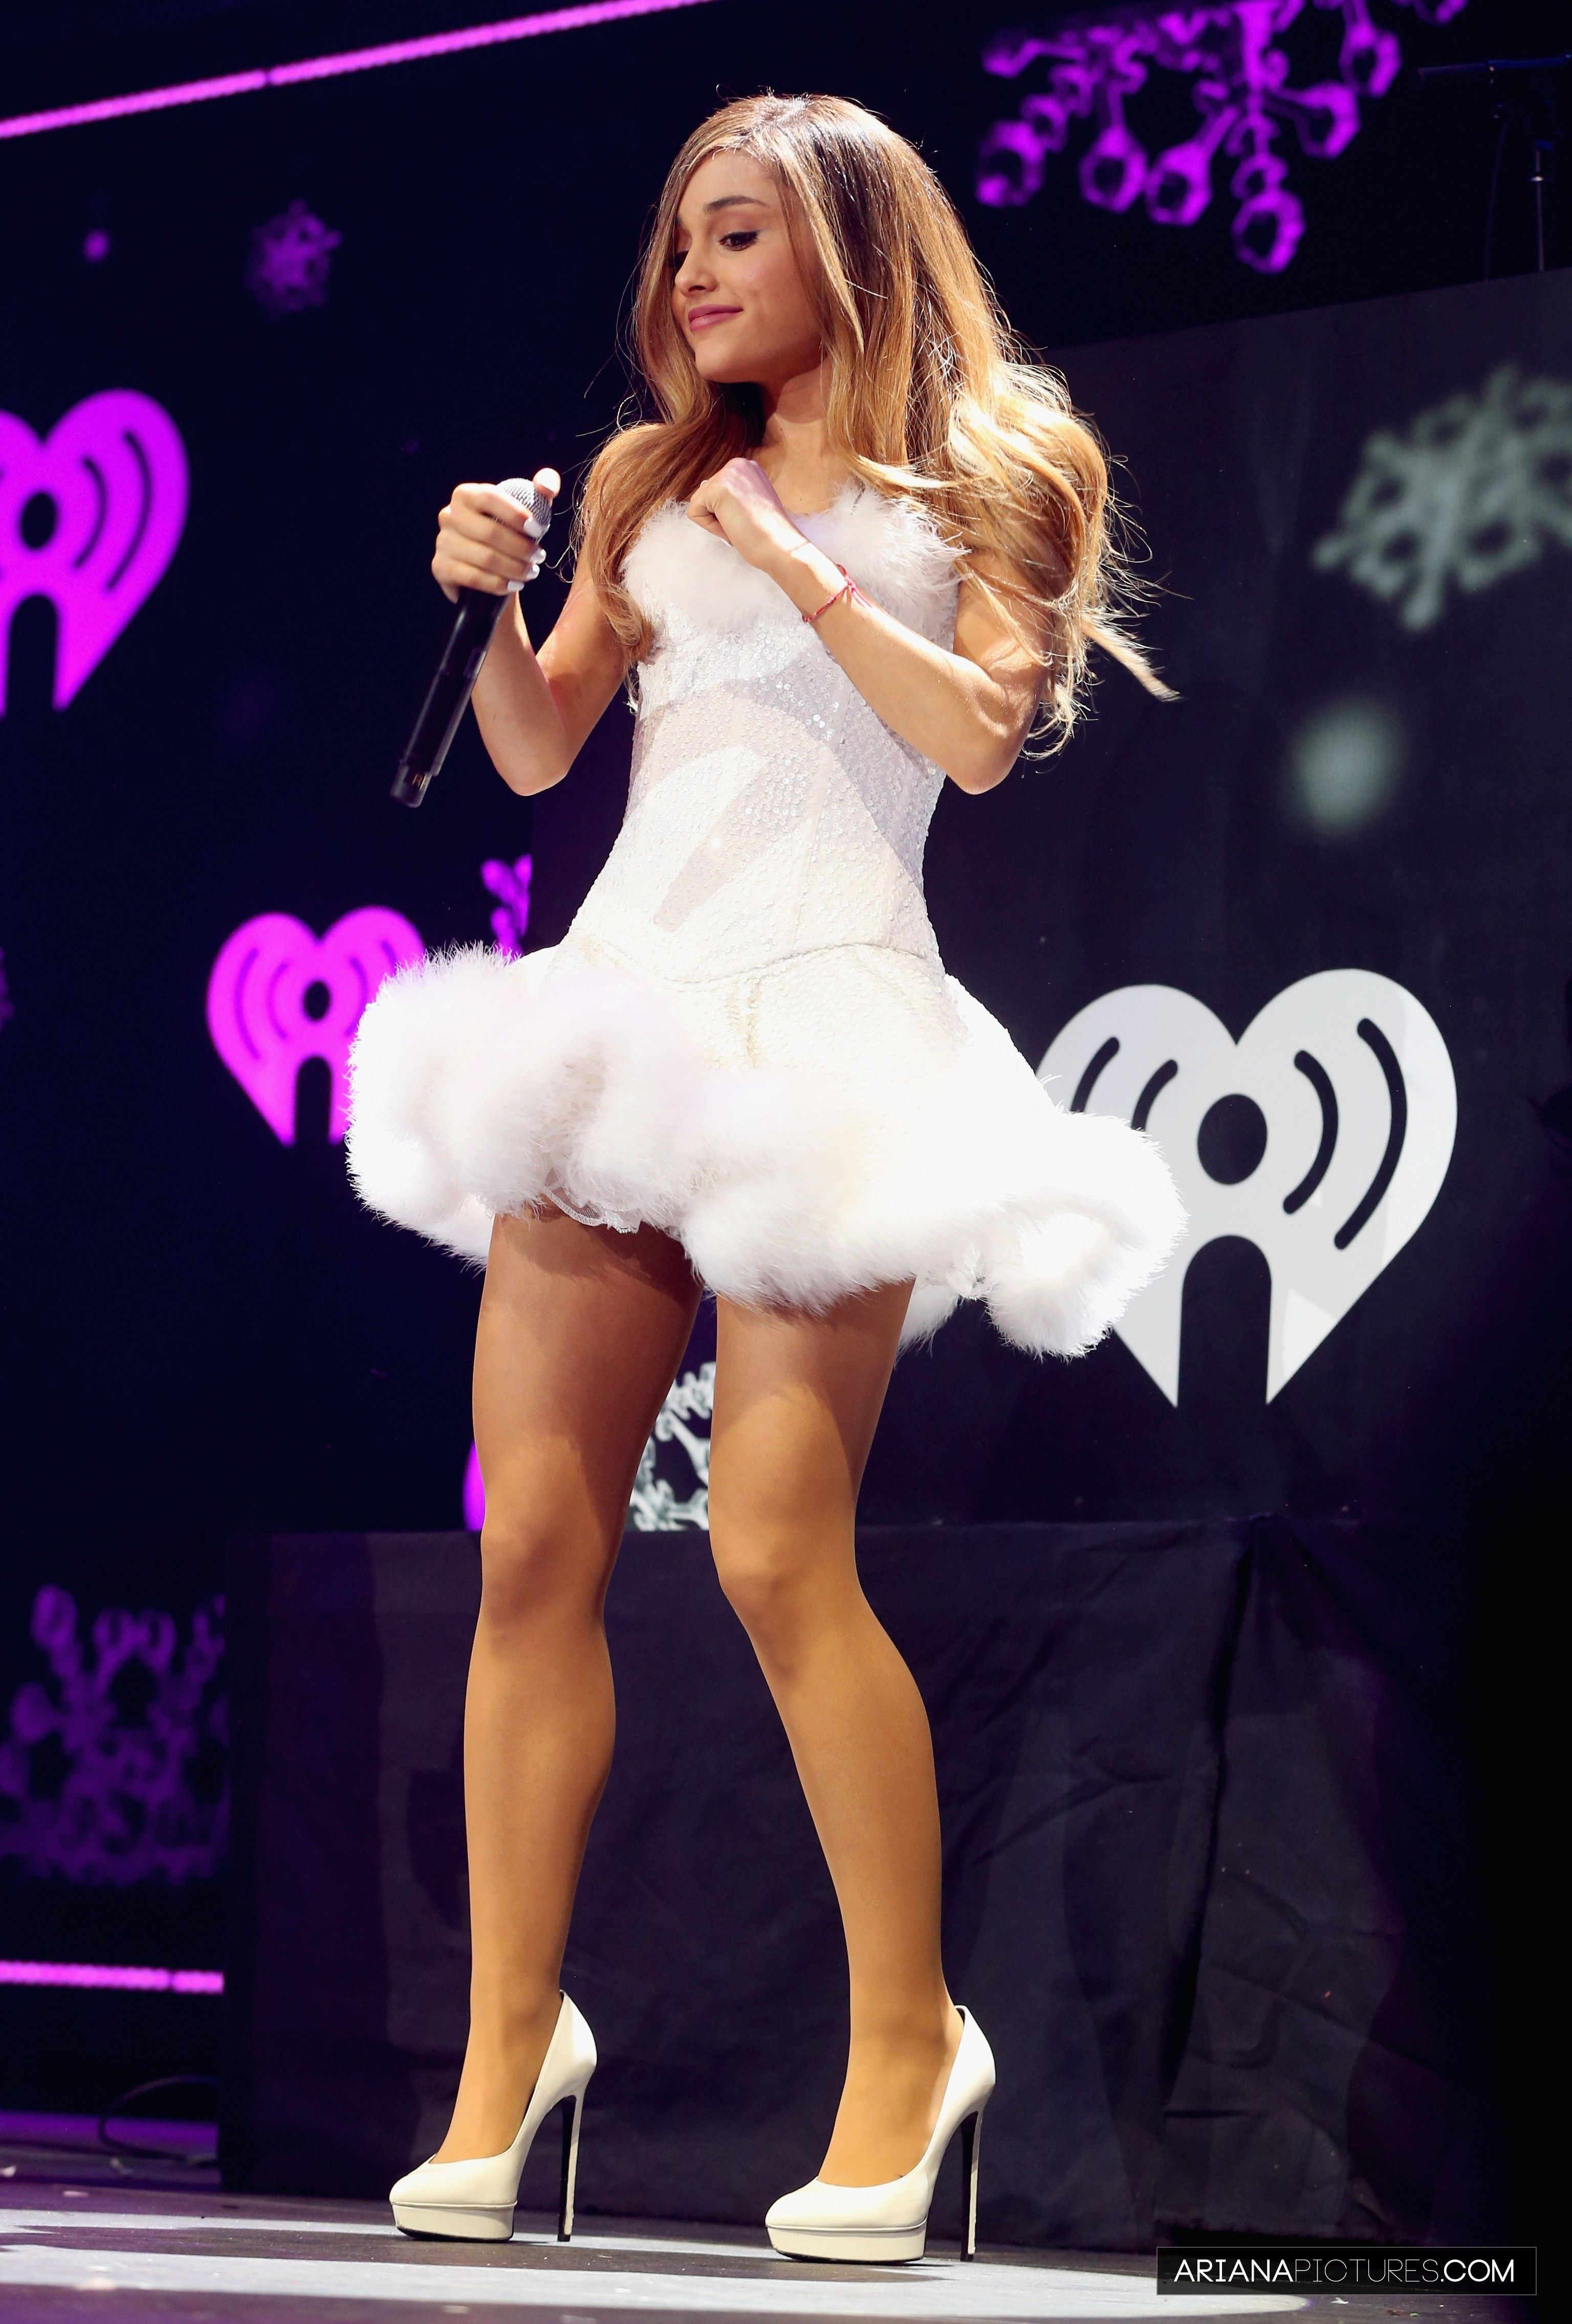 ariana grande during the performance